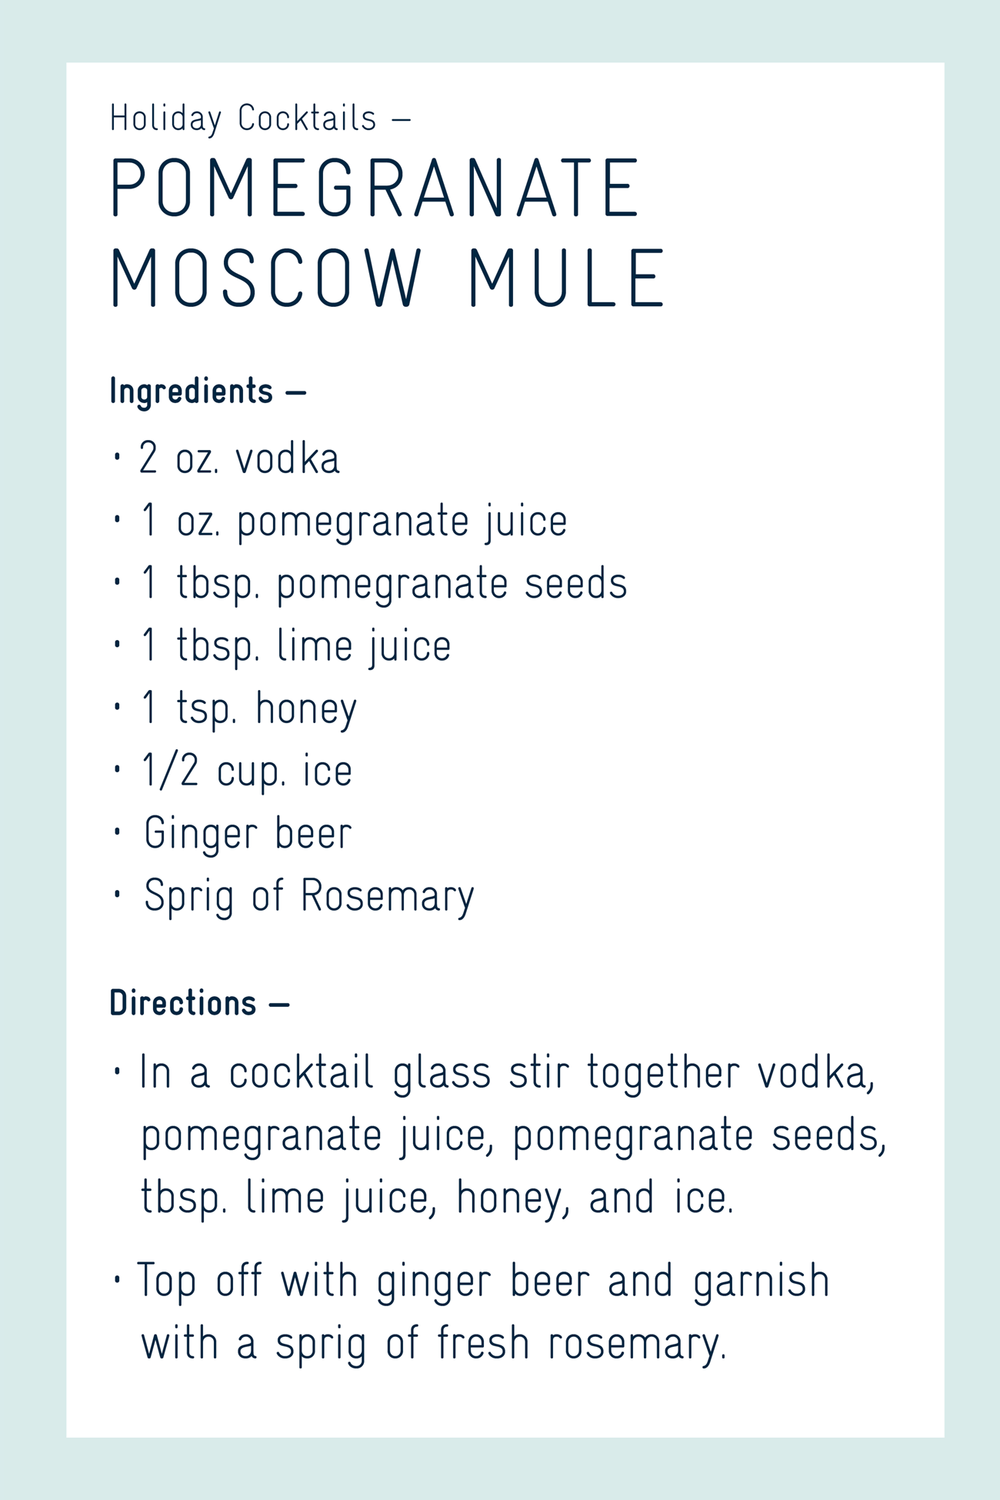 AndreaGonzalez_HolidayCocktails_MoscowMule_Back.jpg